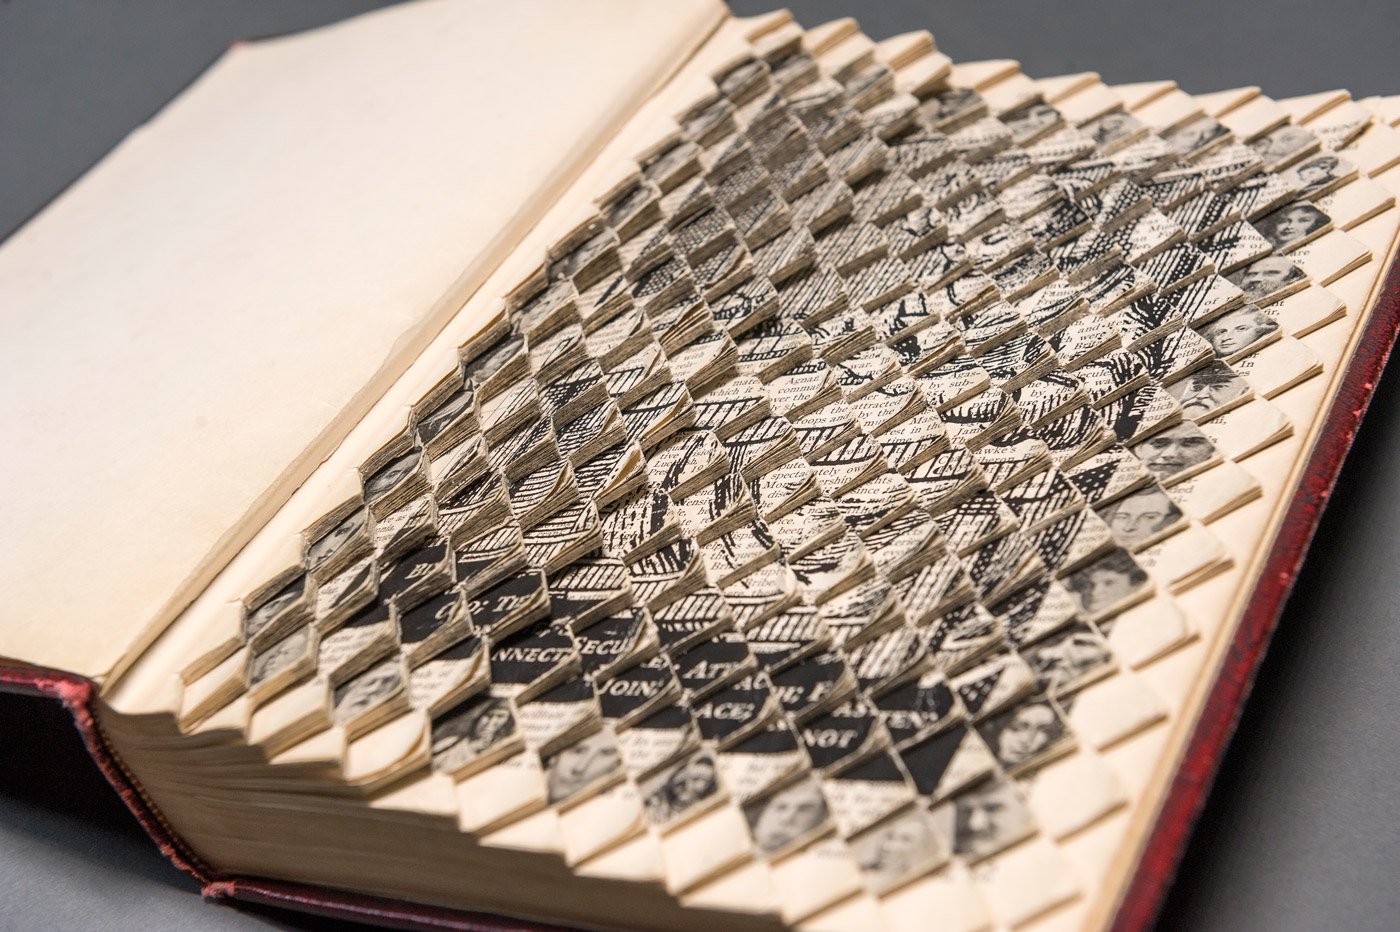 More Than Words 16 Of The Most Interesting And Unusual Items In Vcu S Book Art Collection